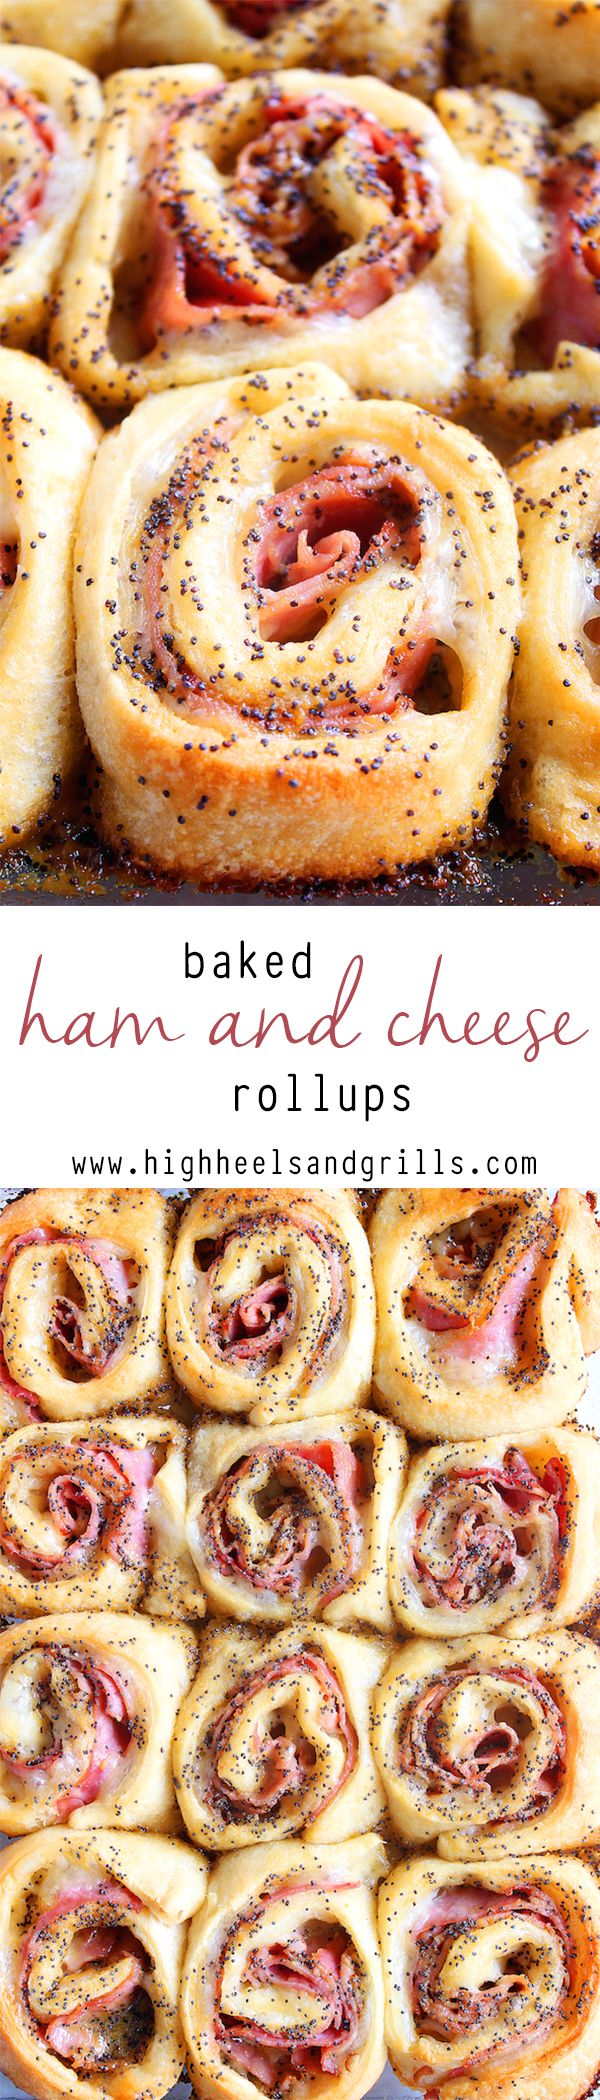 Baked Ham and Cheese Rollups – These are a crowd pleaser EVERY time I make them. Made using @Boar's Head ham! #ad